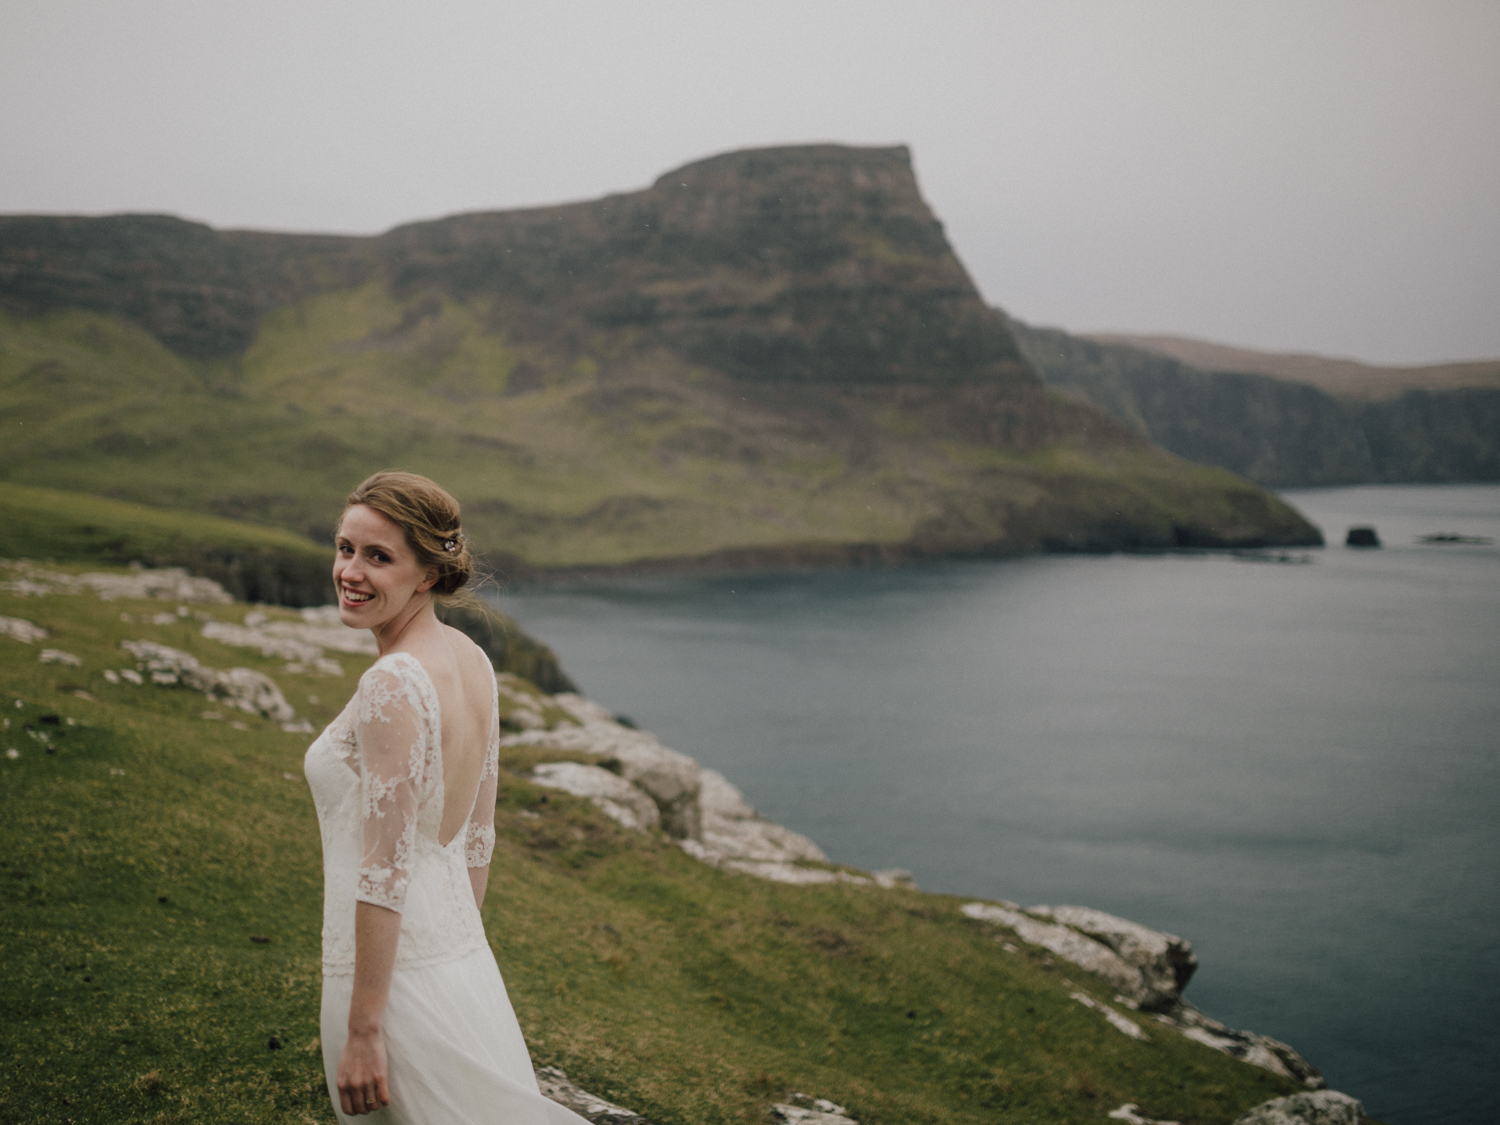 capyture-wedding-photographer-destination-nature-intimate-wedding-isle-of-skye-scotland-915